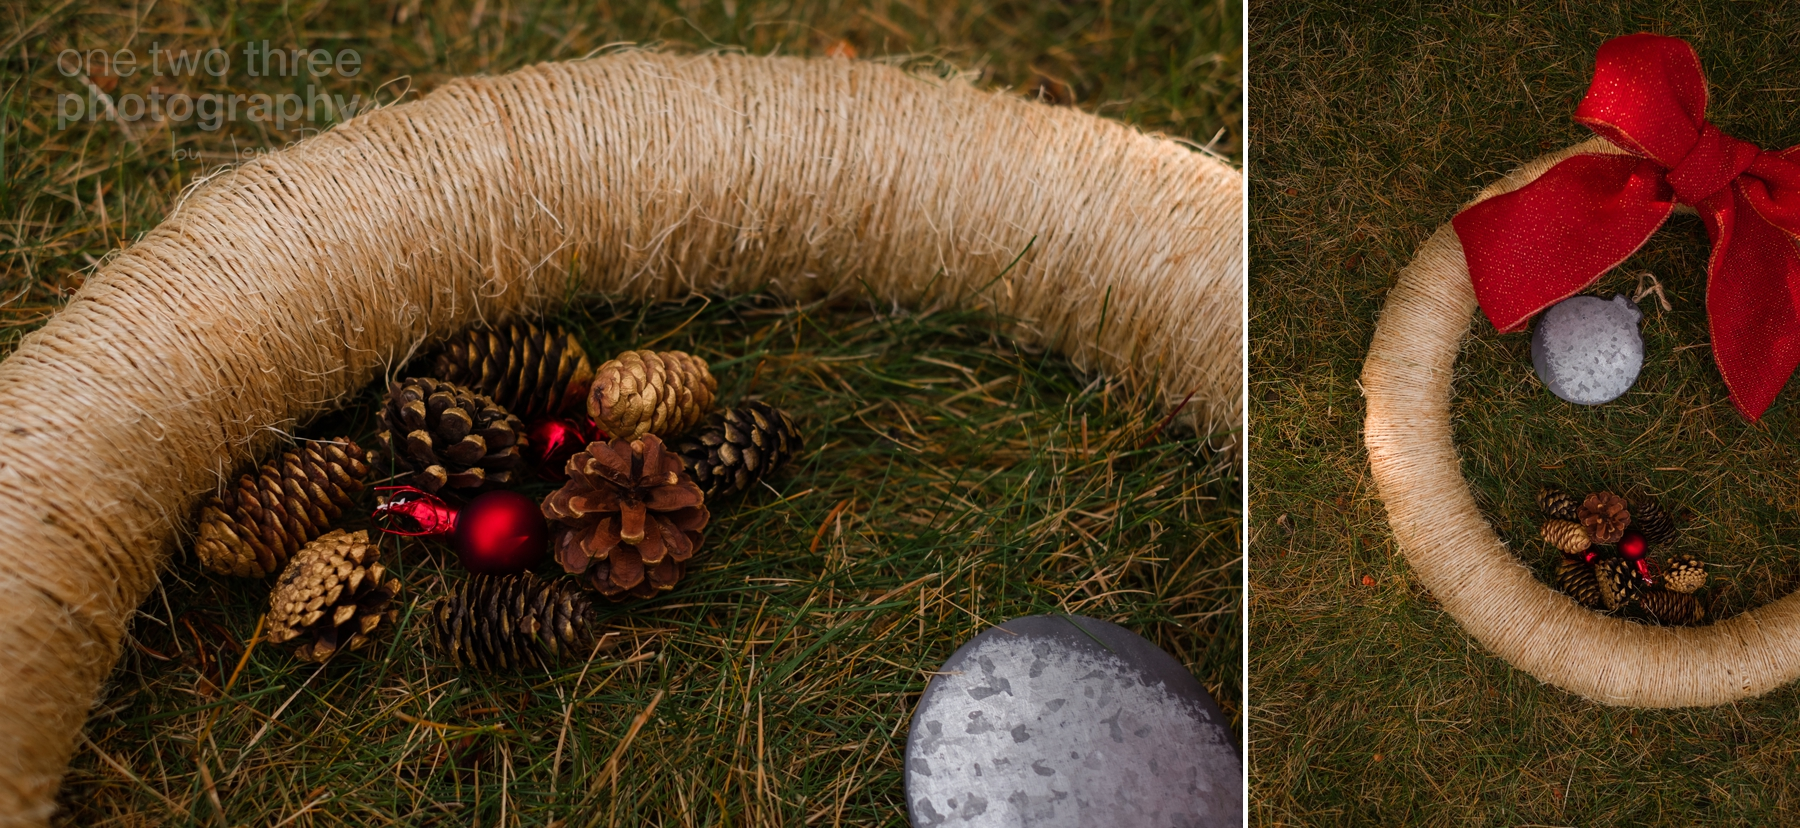 Details of the DIY Wreath Kit sold by Bramble Handmade